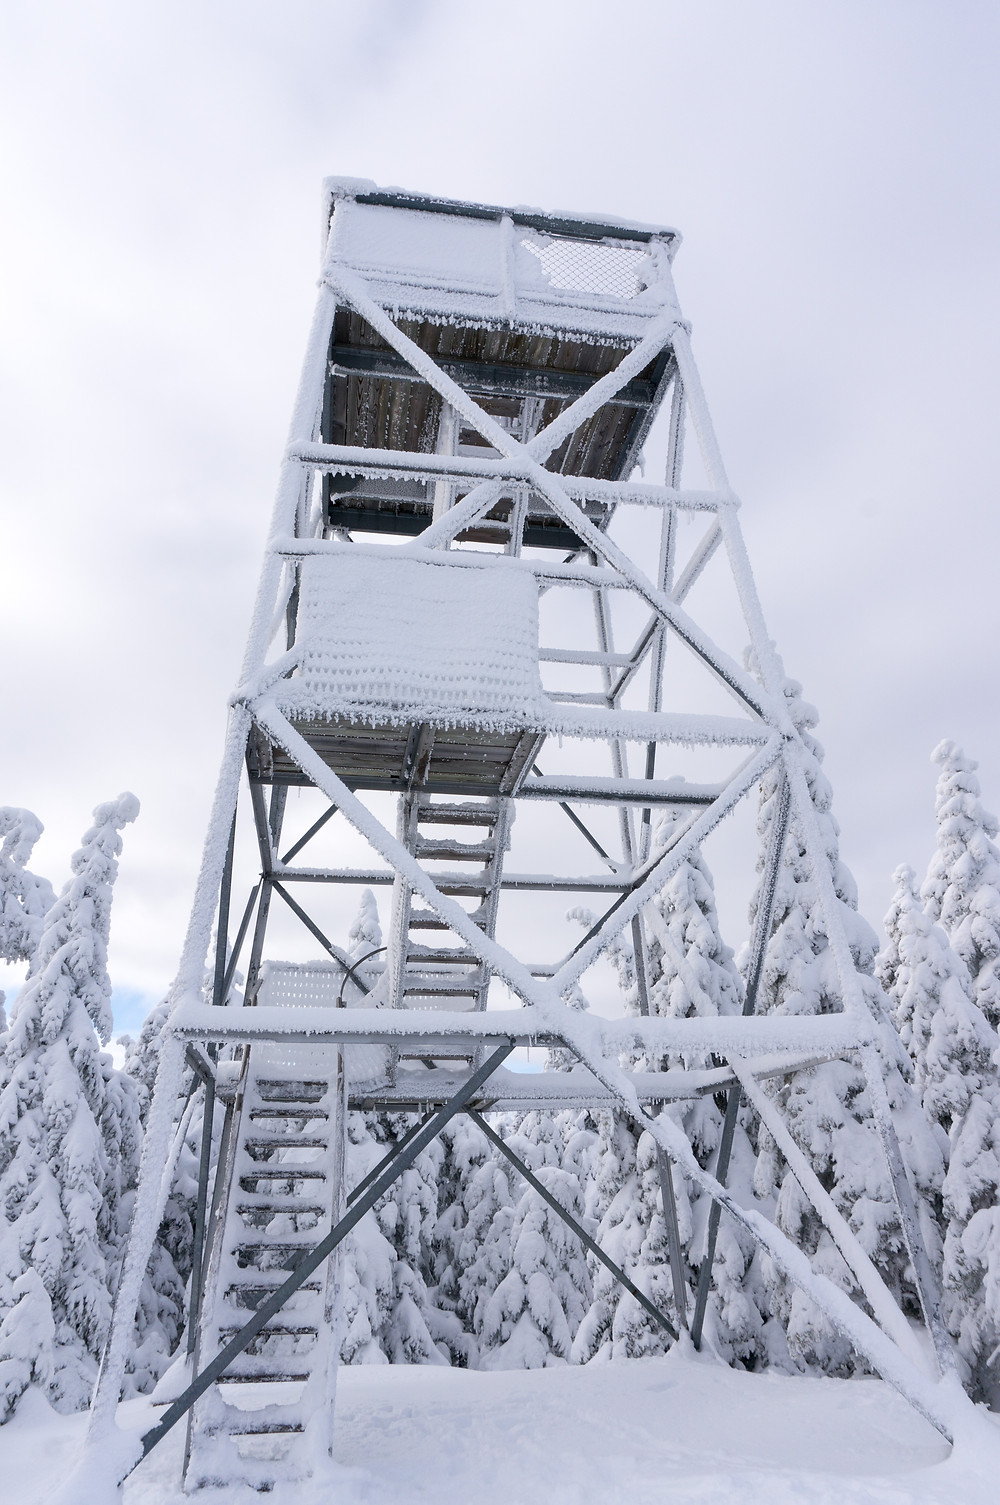 Snow-covered fire tower atop Bald Mountain in Rangeley, Maine.